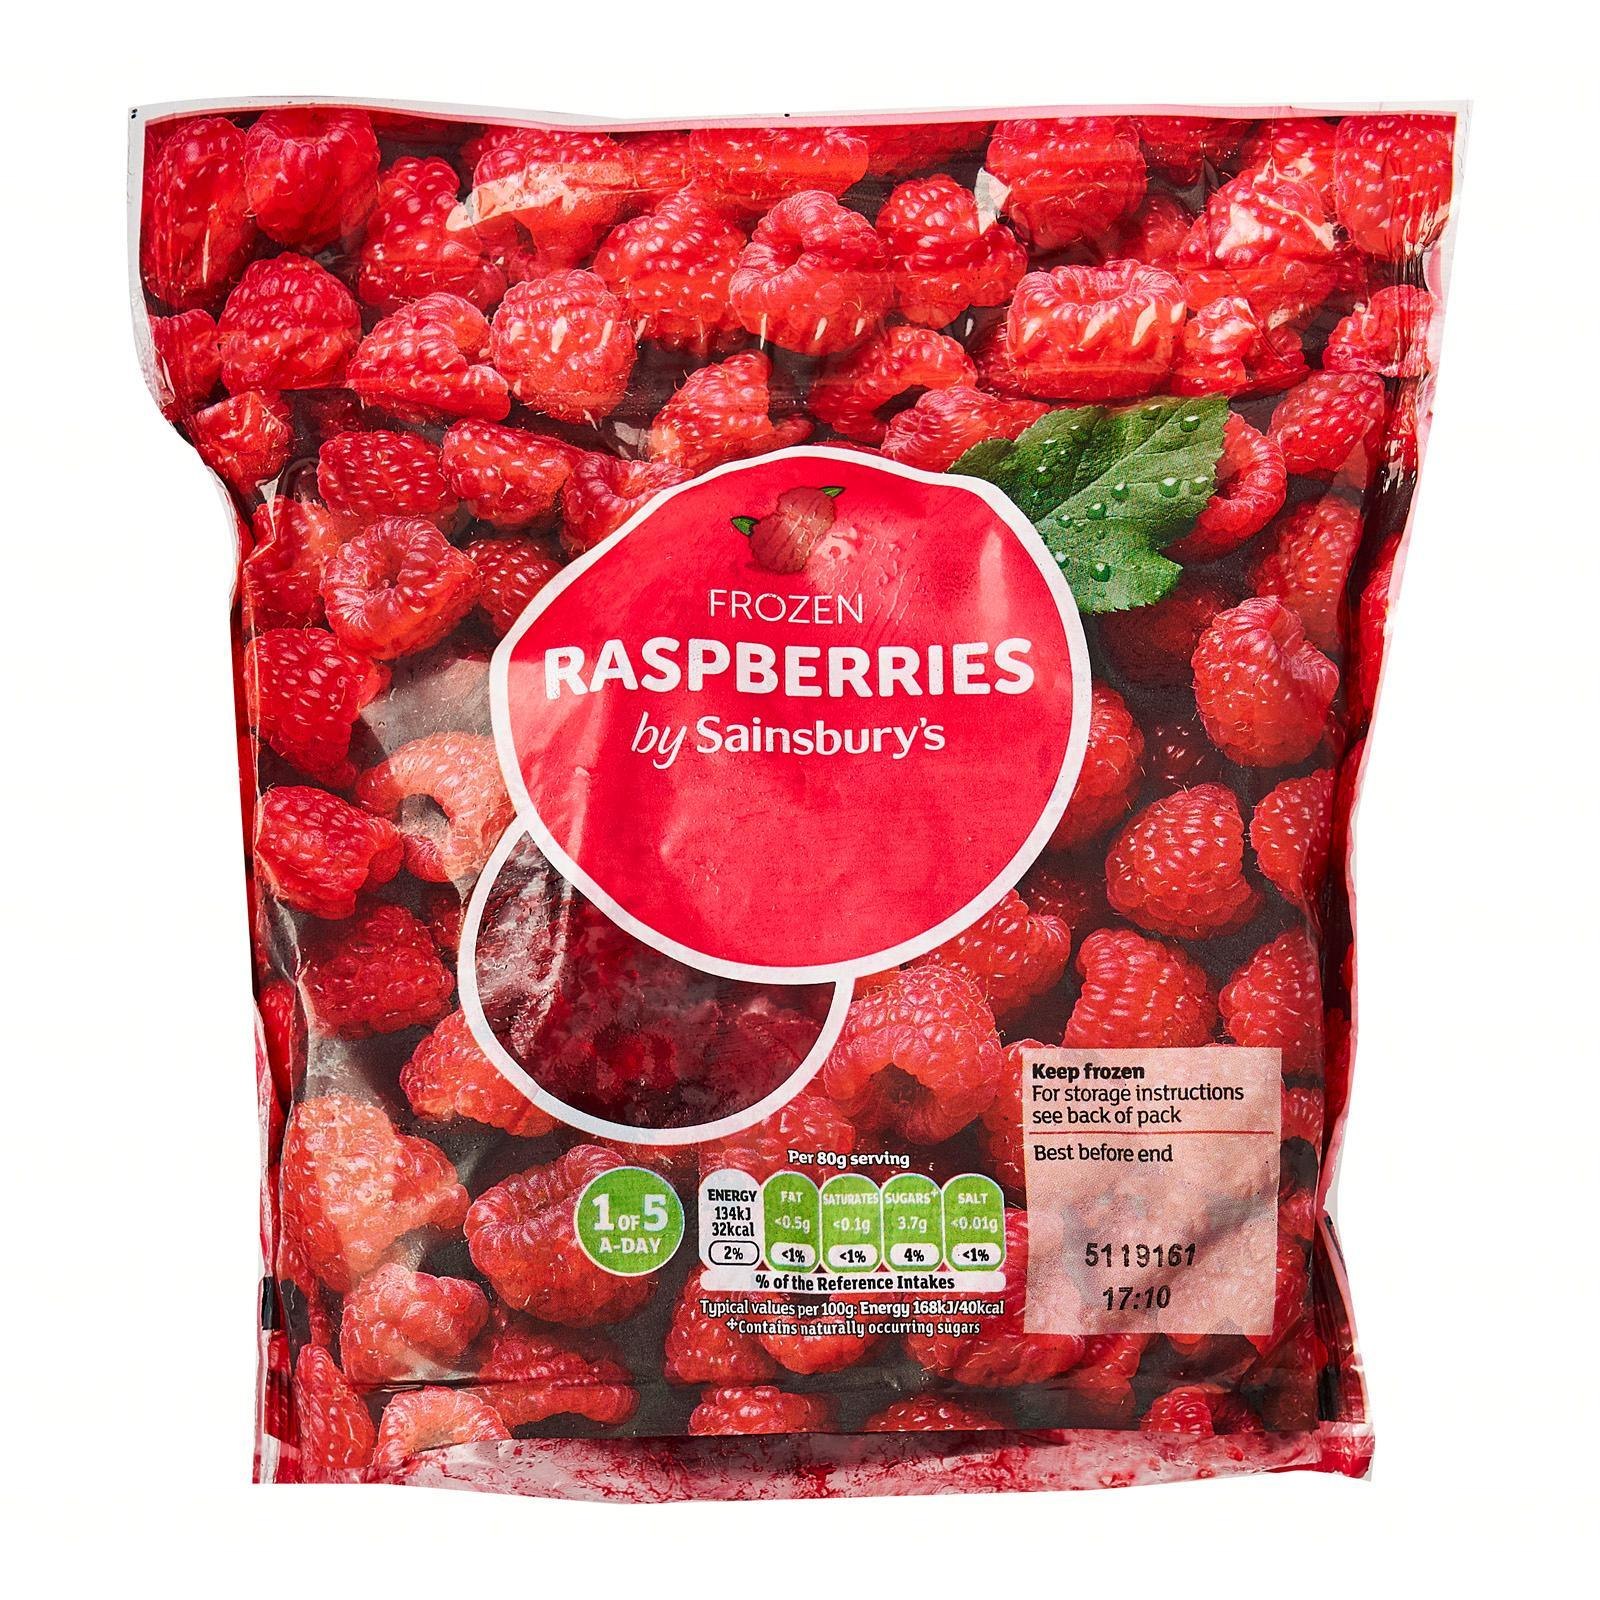 Sainsbury's Raspberries - Frozen